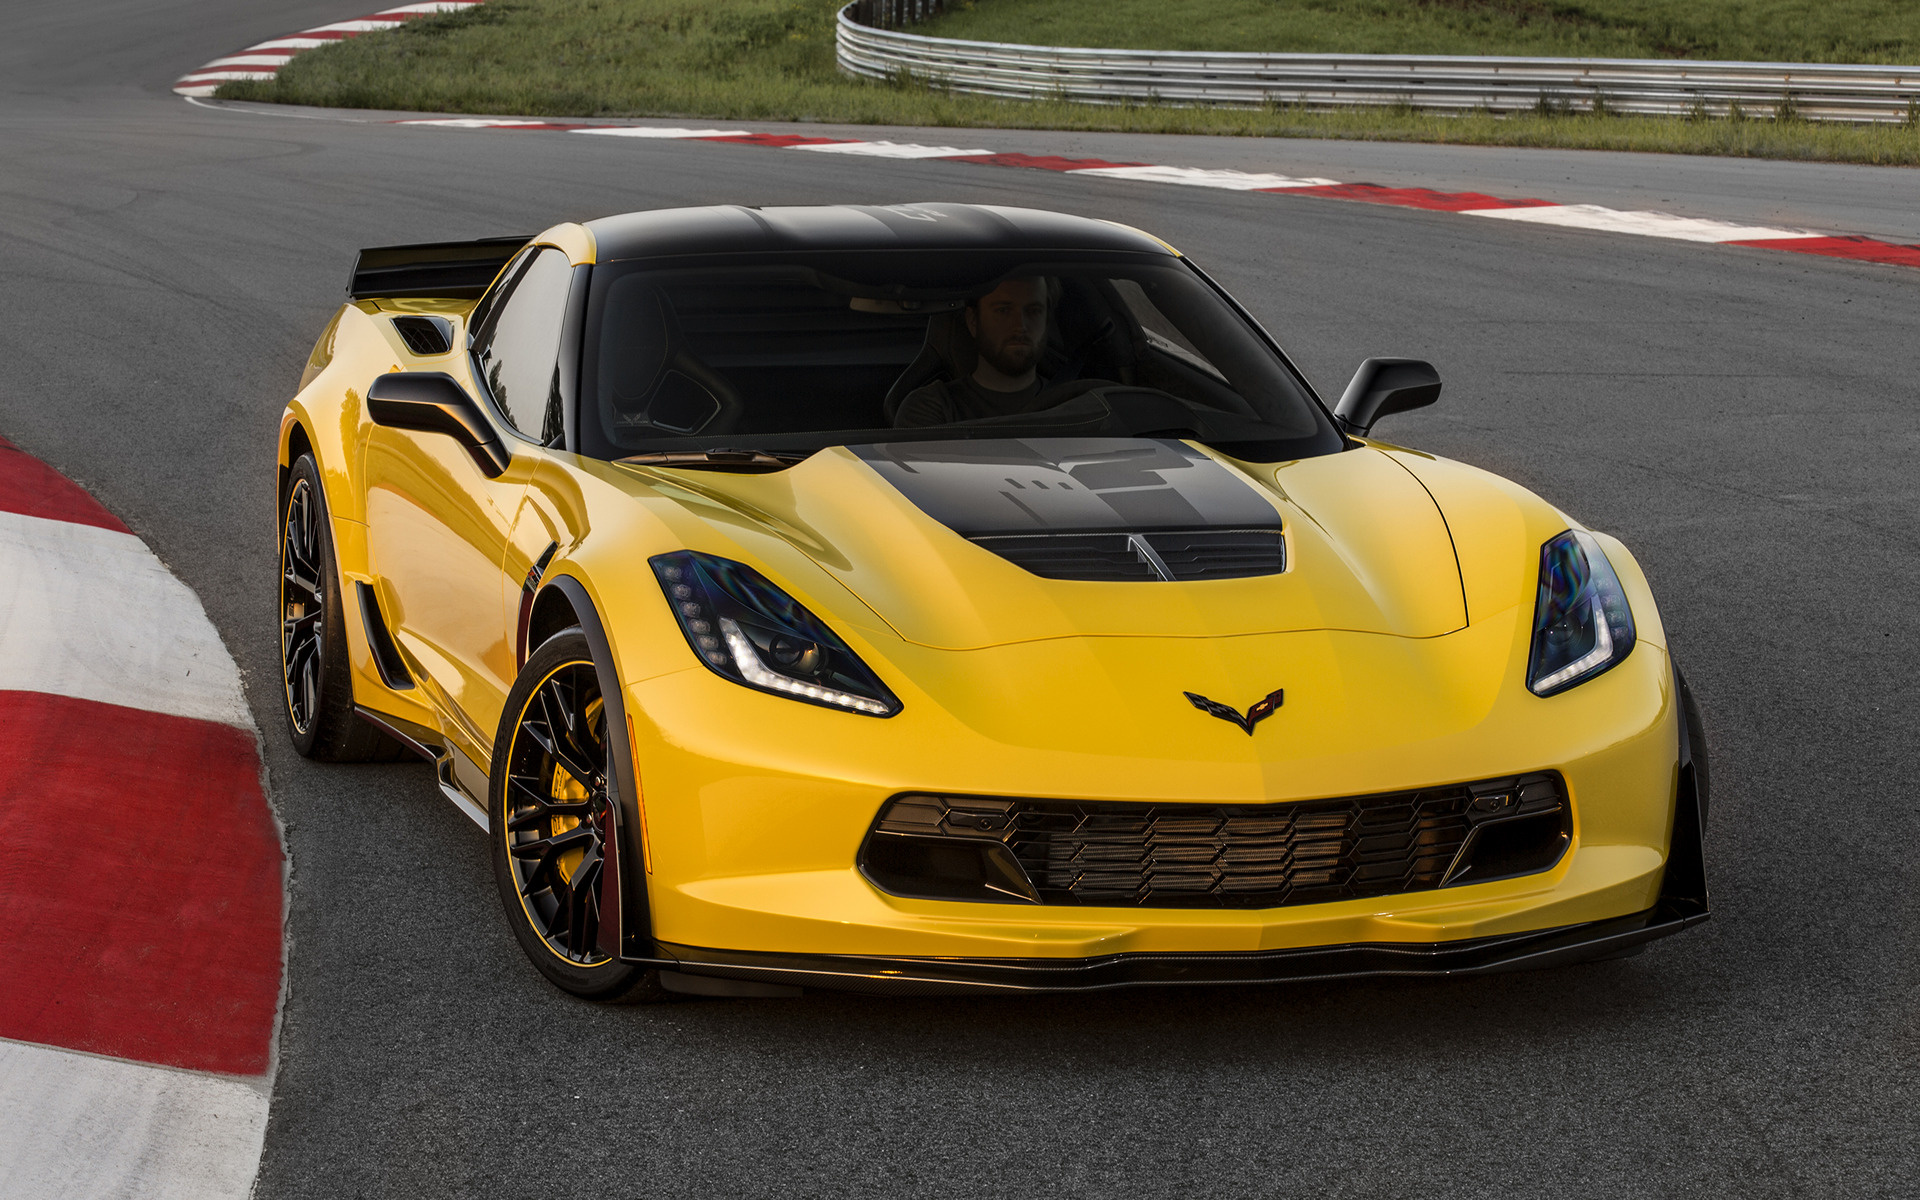 2016 Chevrolet Corvette Z06 C7r Edition Coupe Wallpapers And Hd